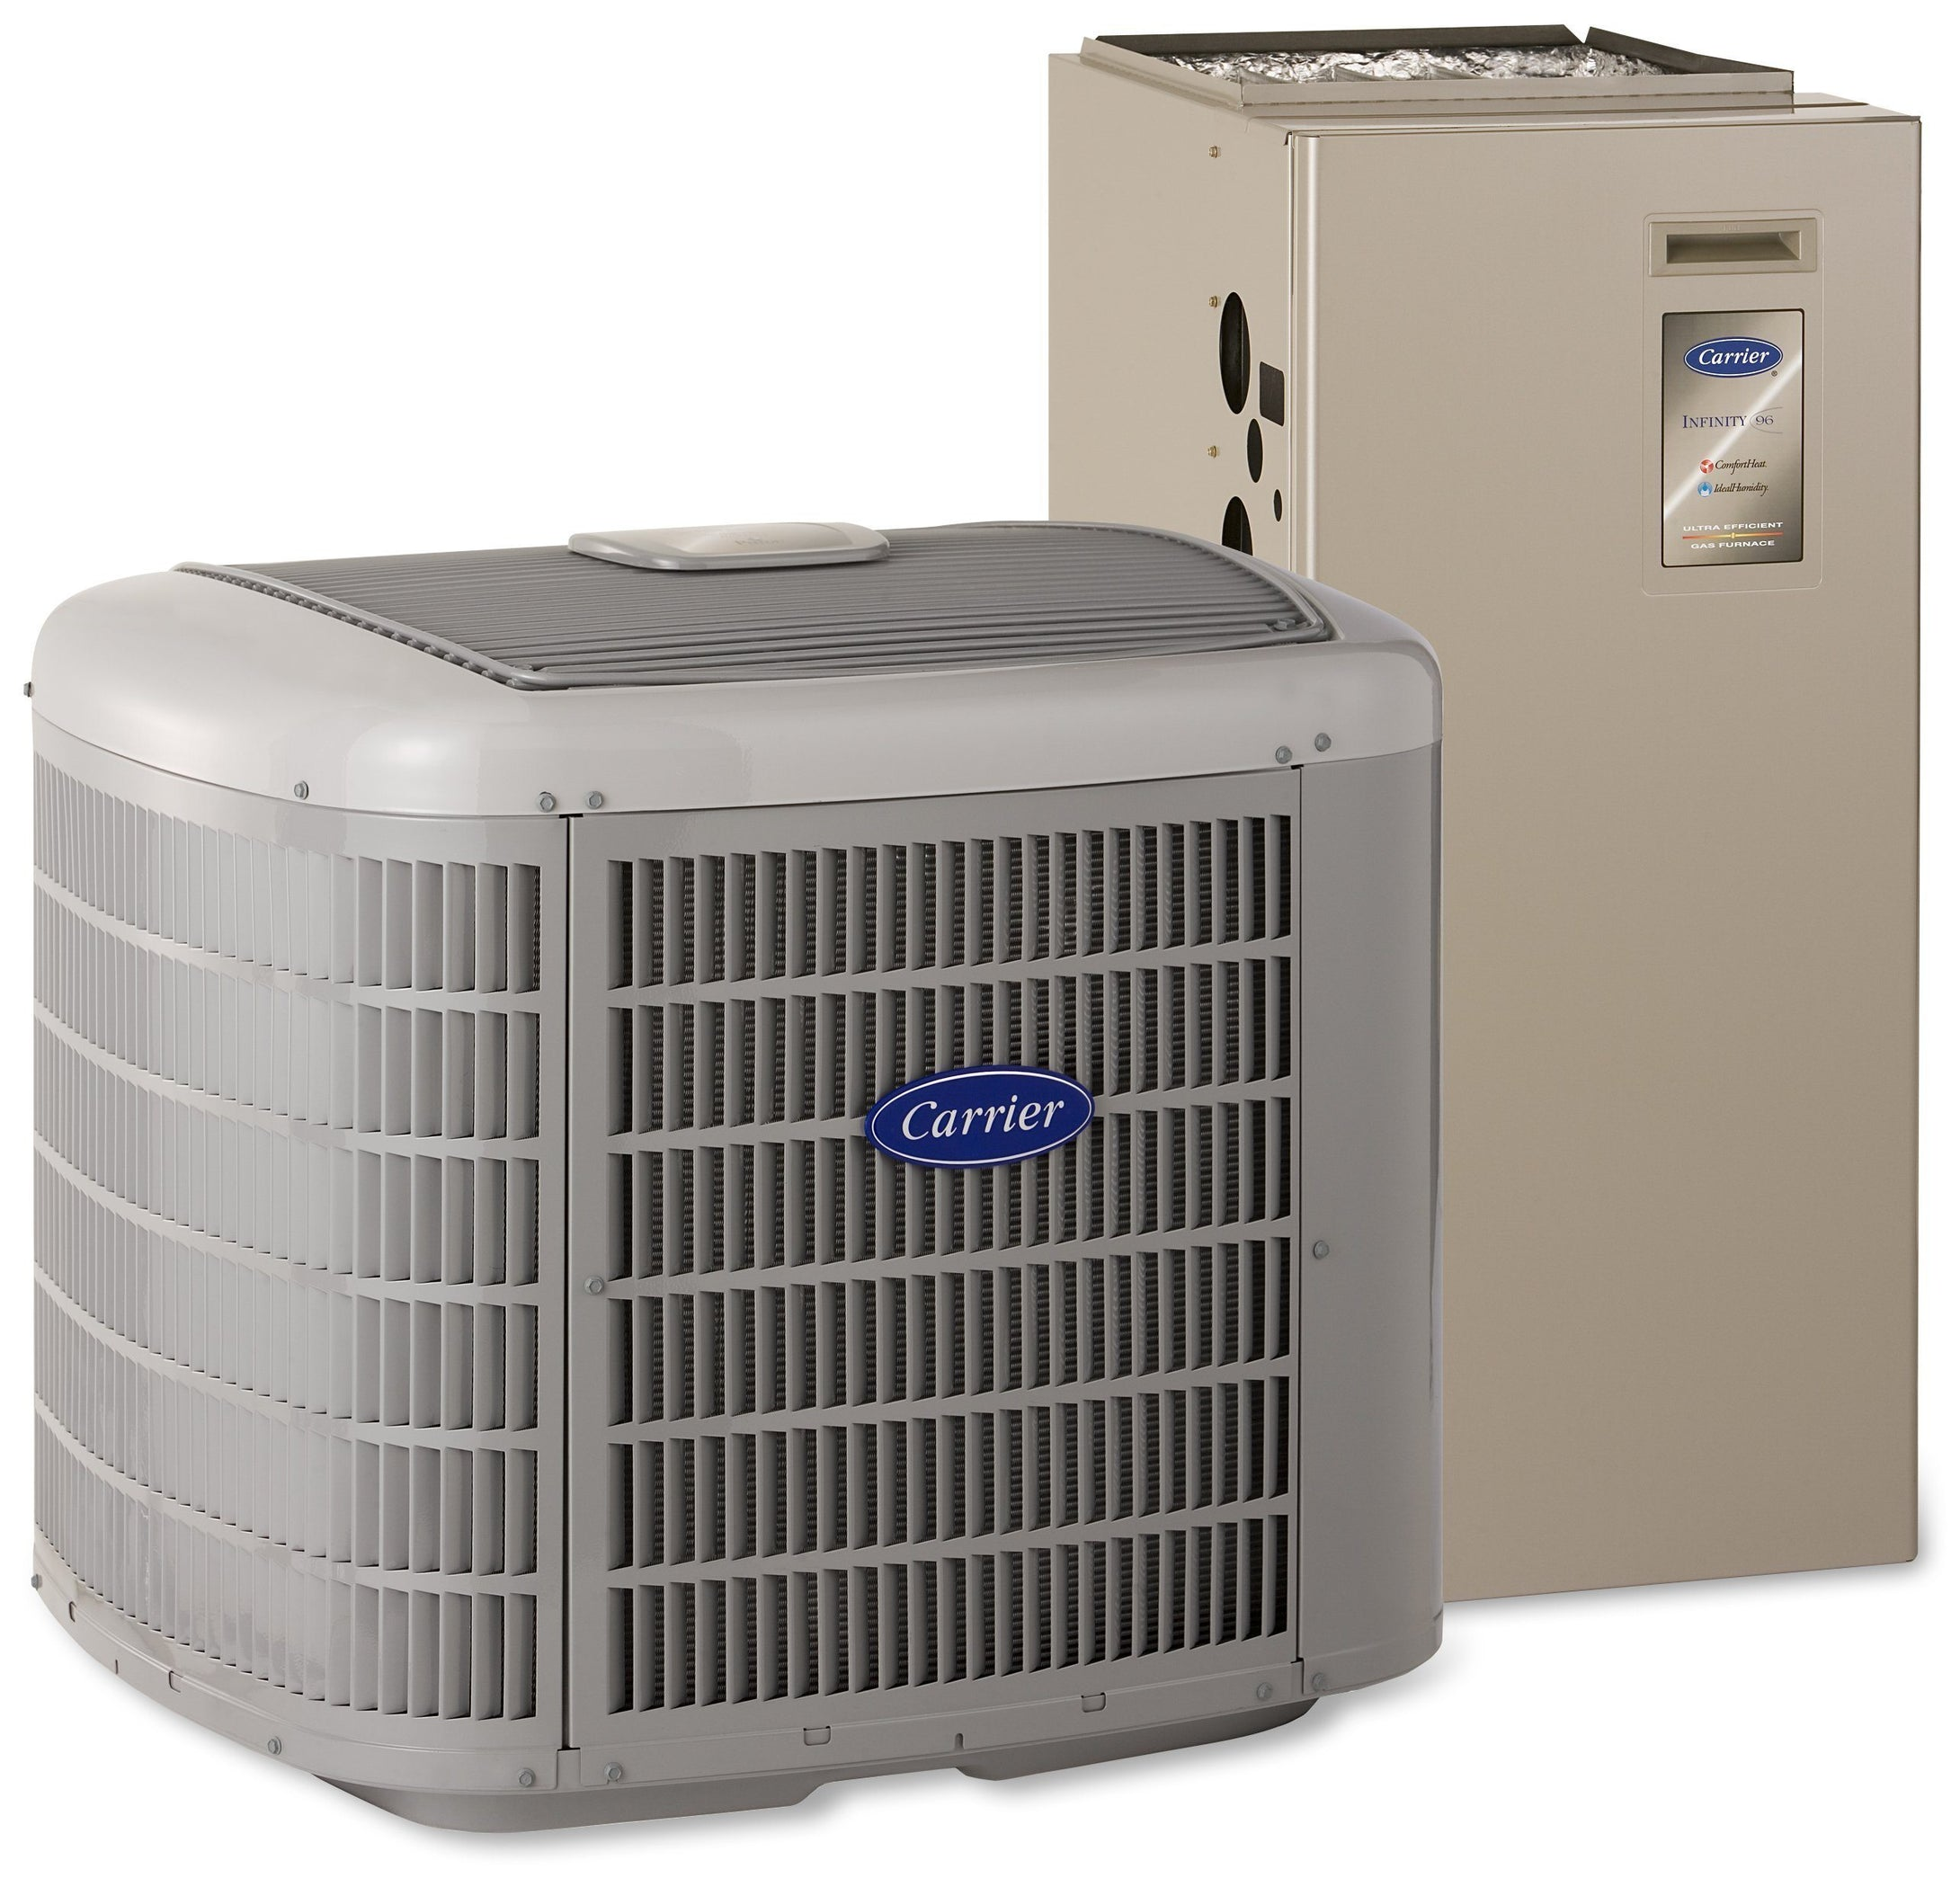 Carrier Infinity 20 Greenspeed 174 4 Ton Heat Pump System